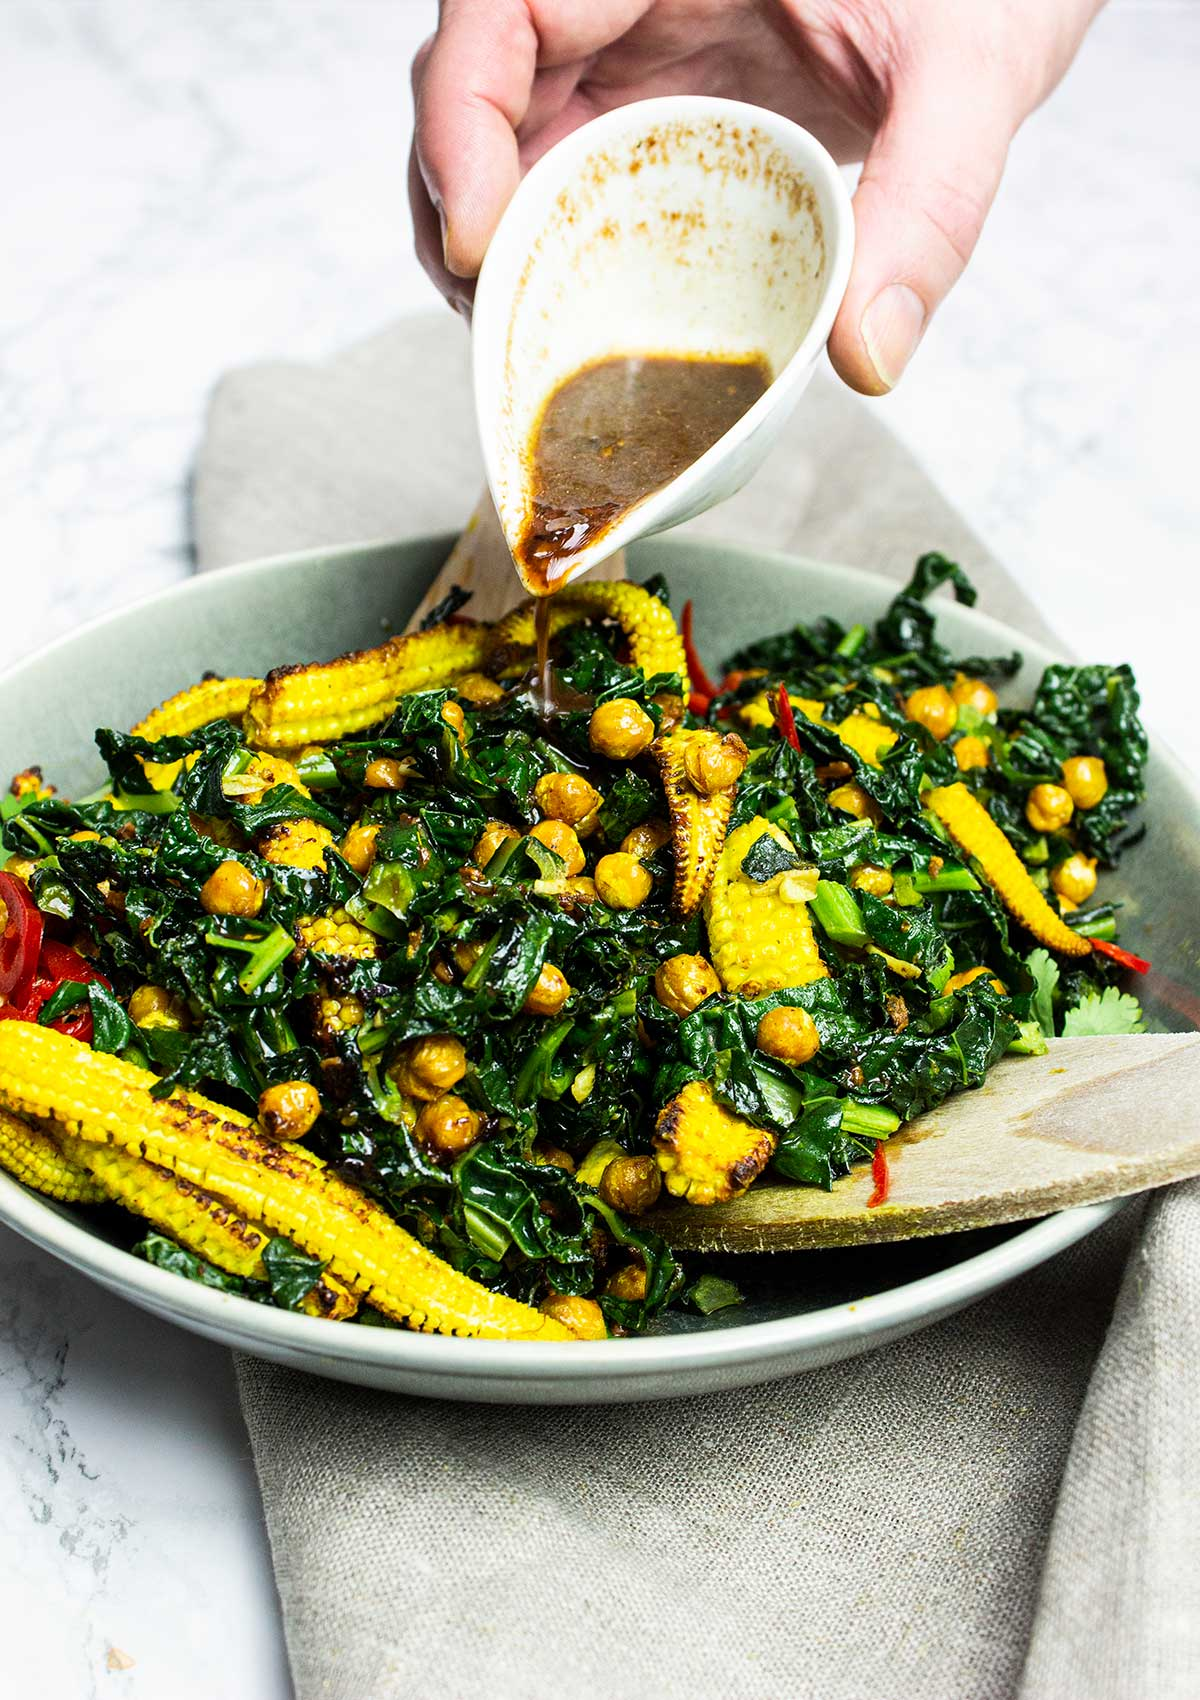 Asian kale salad with chickpeas